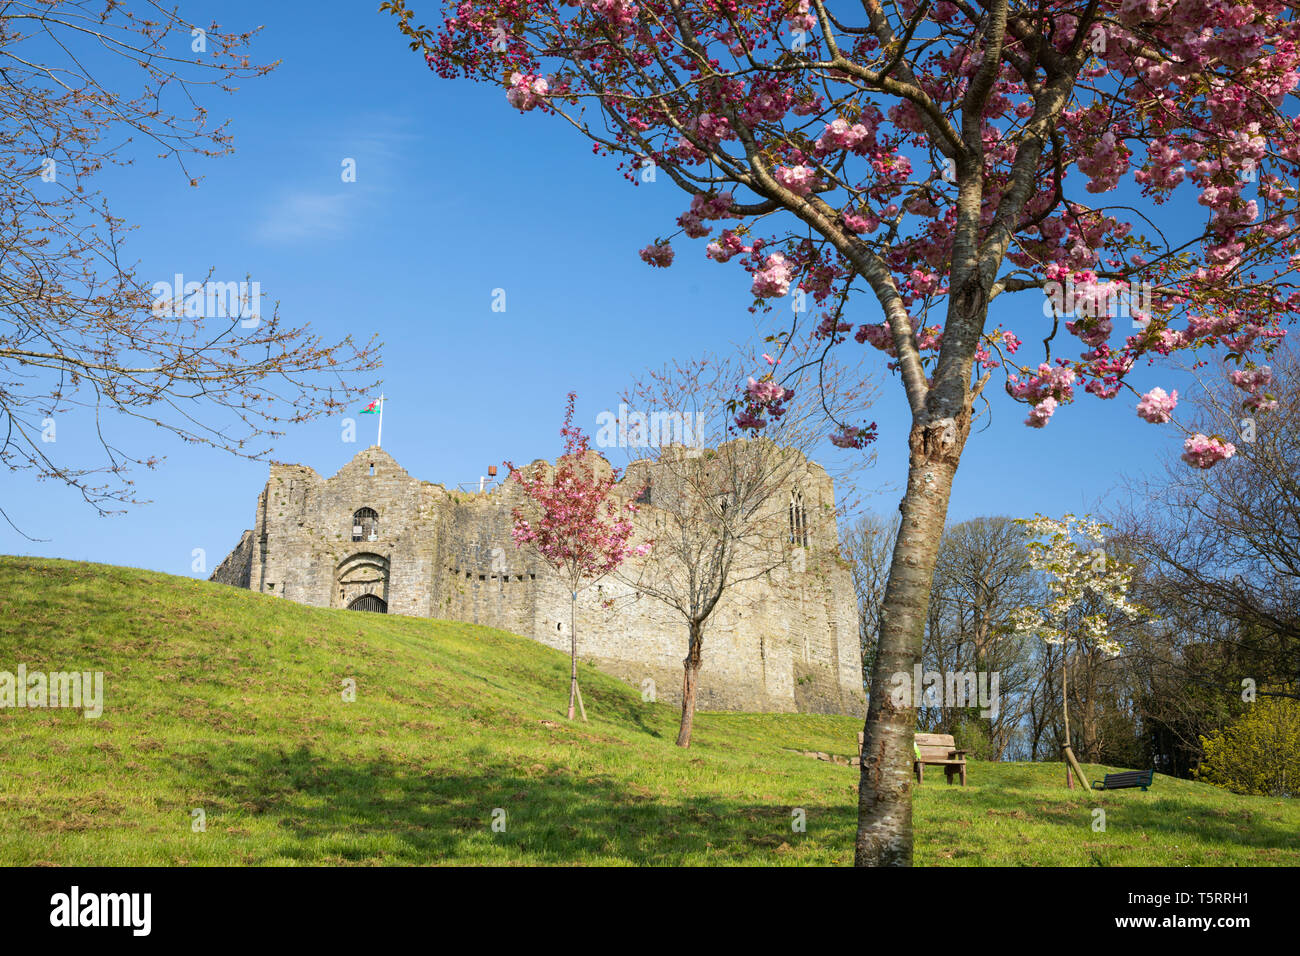 Oystermouth Castle with spring blossom, Mumbles, Gower Peninsula, Swansea, West Glamorgan, Wales, United Kingdom, Europe - Stock Image